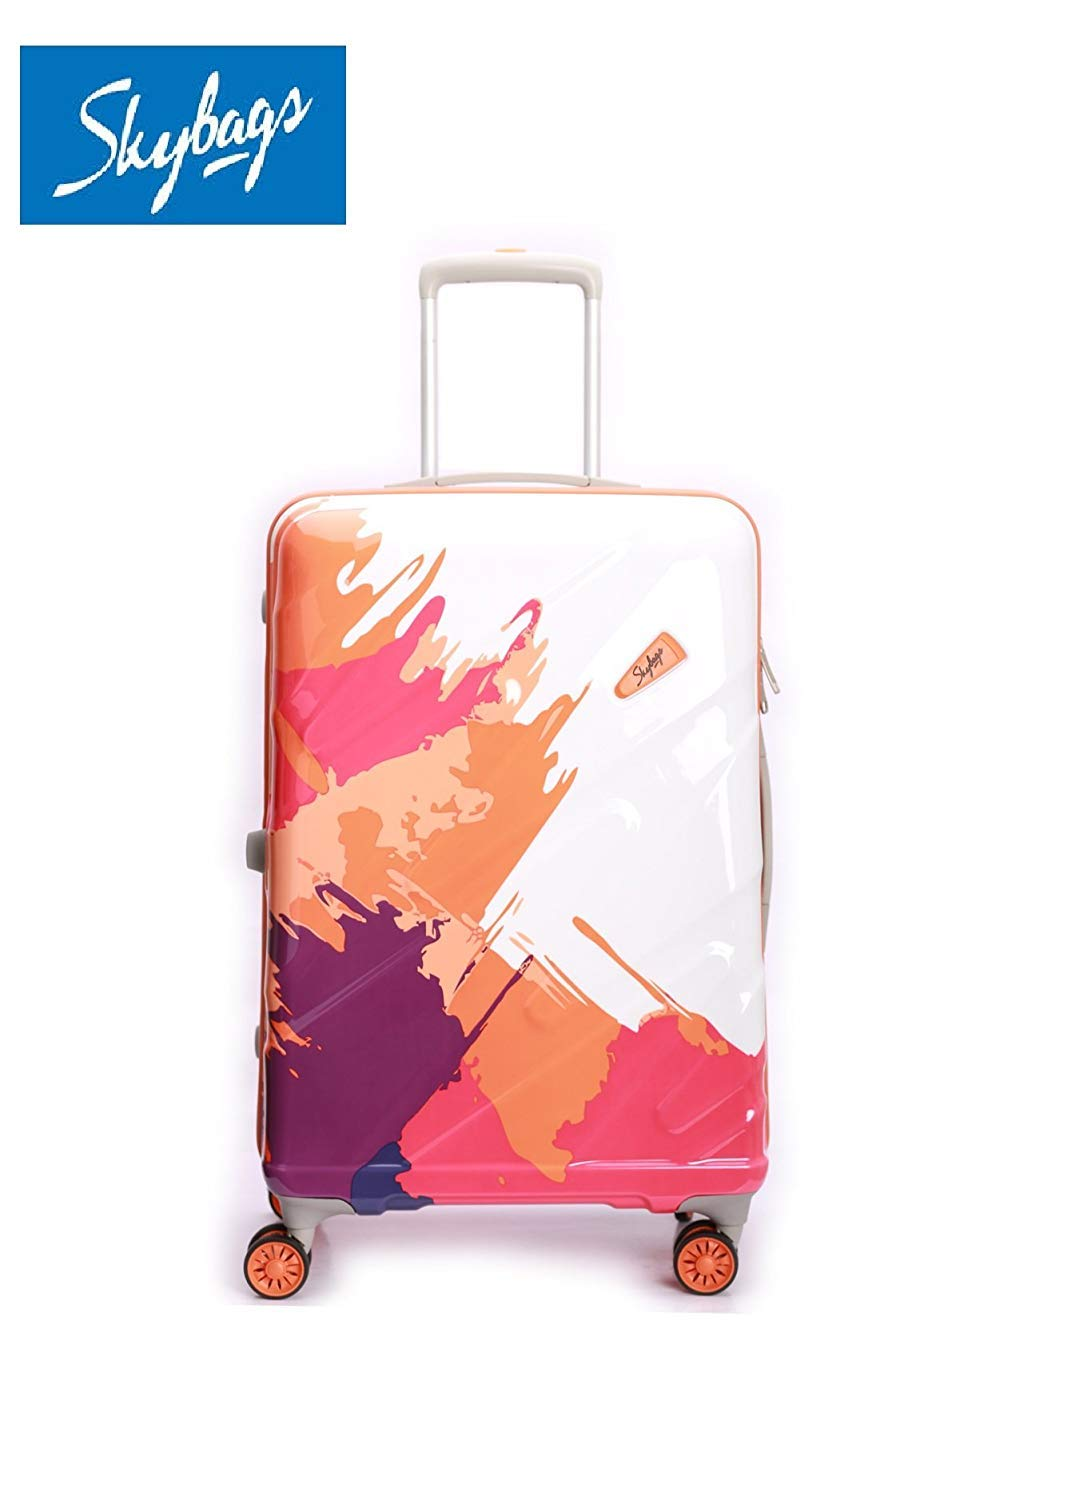 cc9859b4b3b SKYBAGS. Polycarbonate Check-in Luggage (Neon Orange